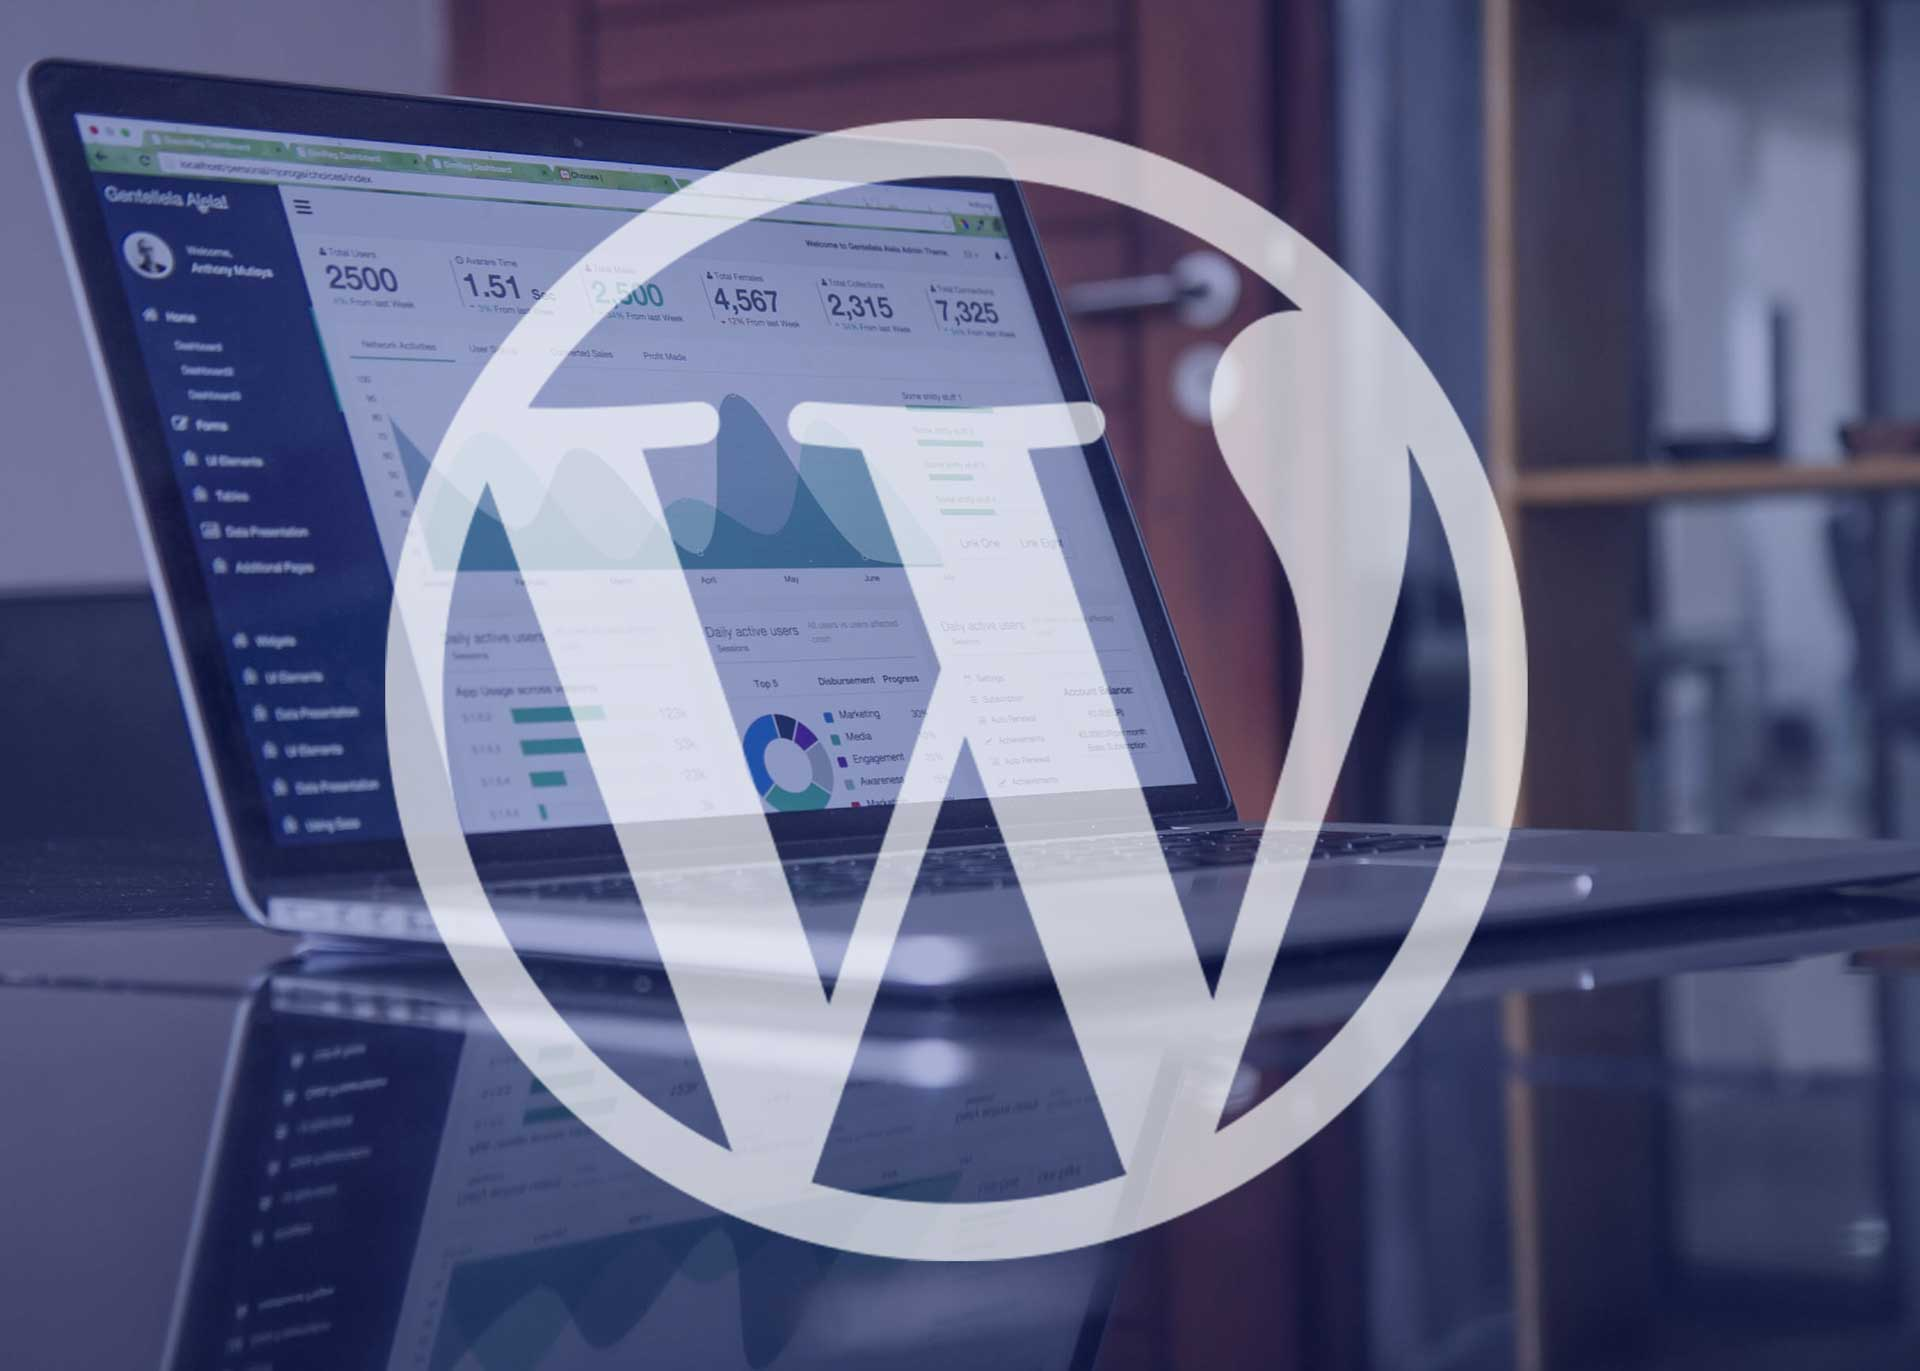 WordPress installation automatic and manual step by step